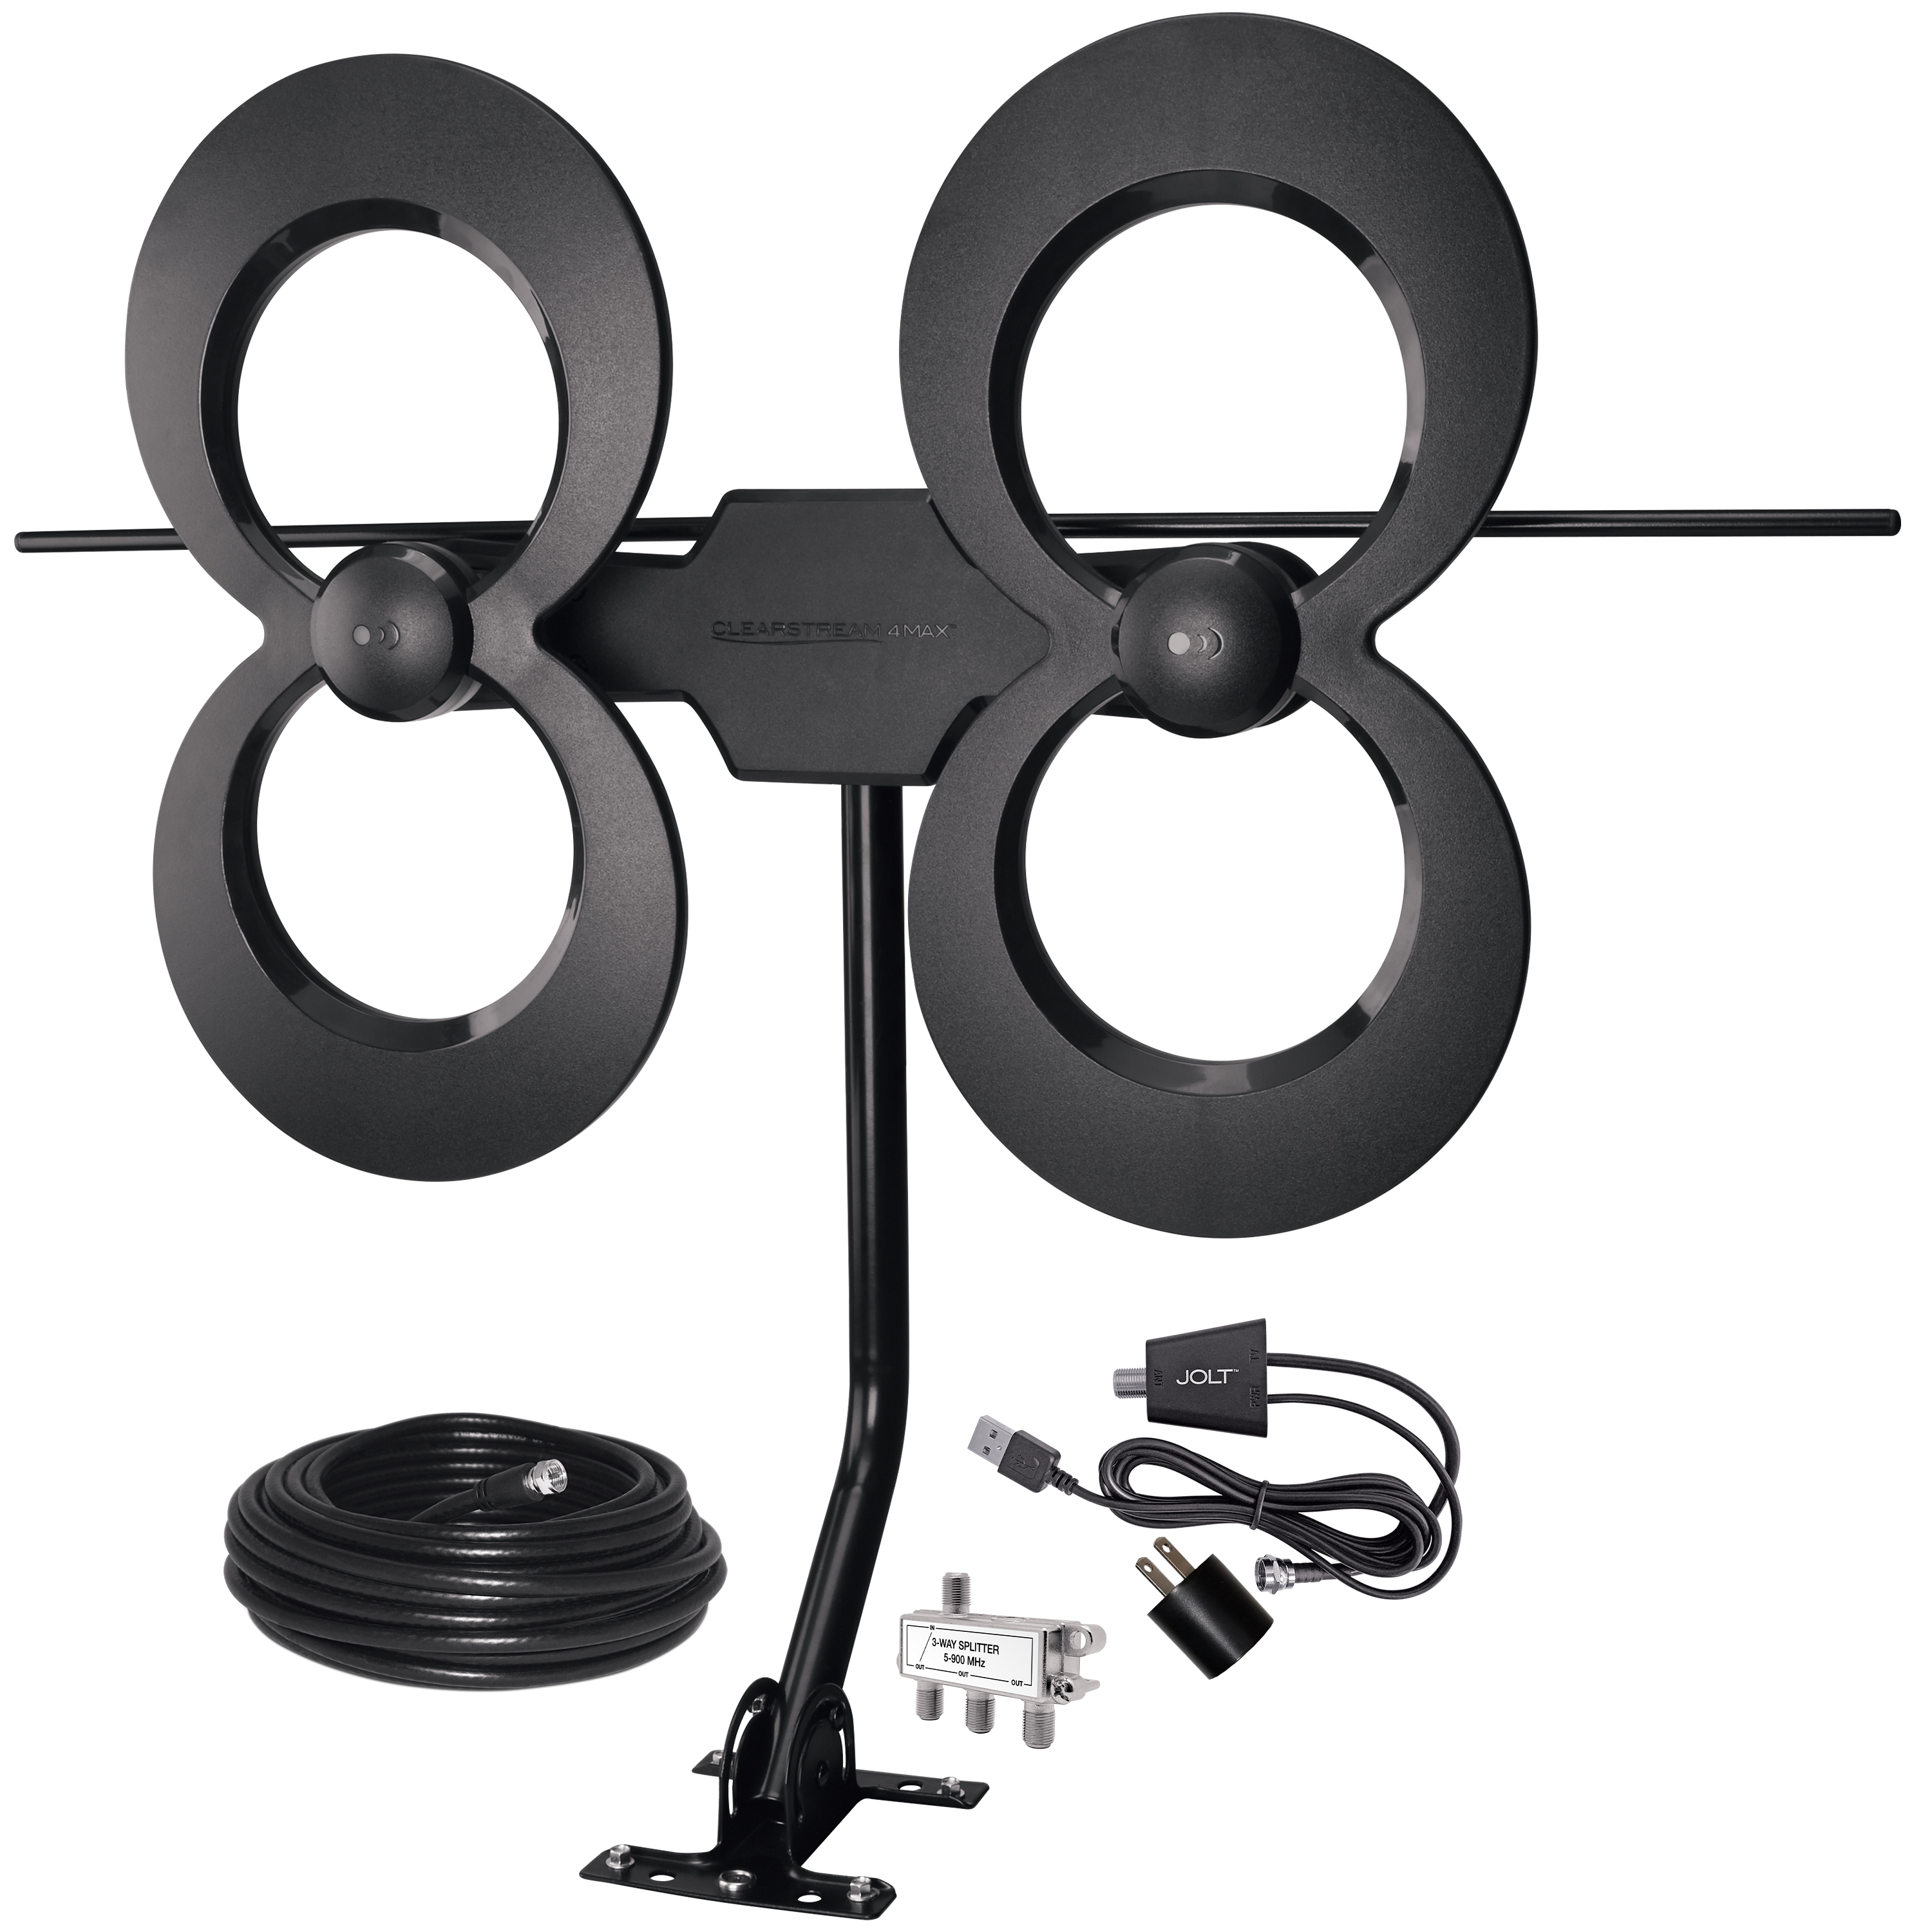 https://www.antennasdirect.com - ClearStream 4MAX® COMPLETE UHF/VHF Outdoor HDTV Antenna with Amplifier, Mast, Coaxial Cable, and Splitter